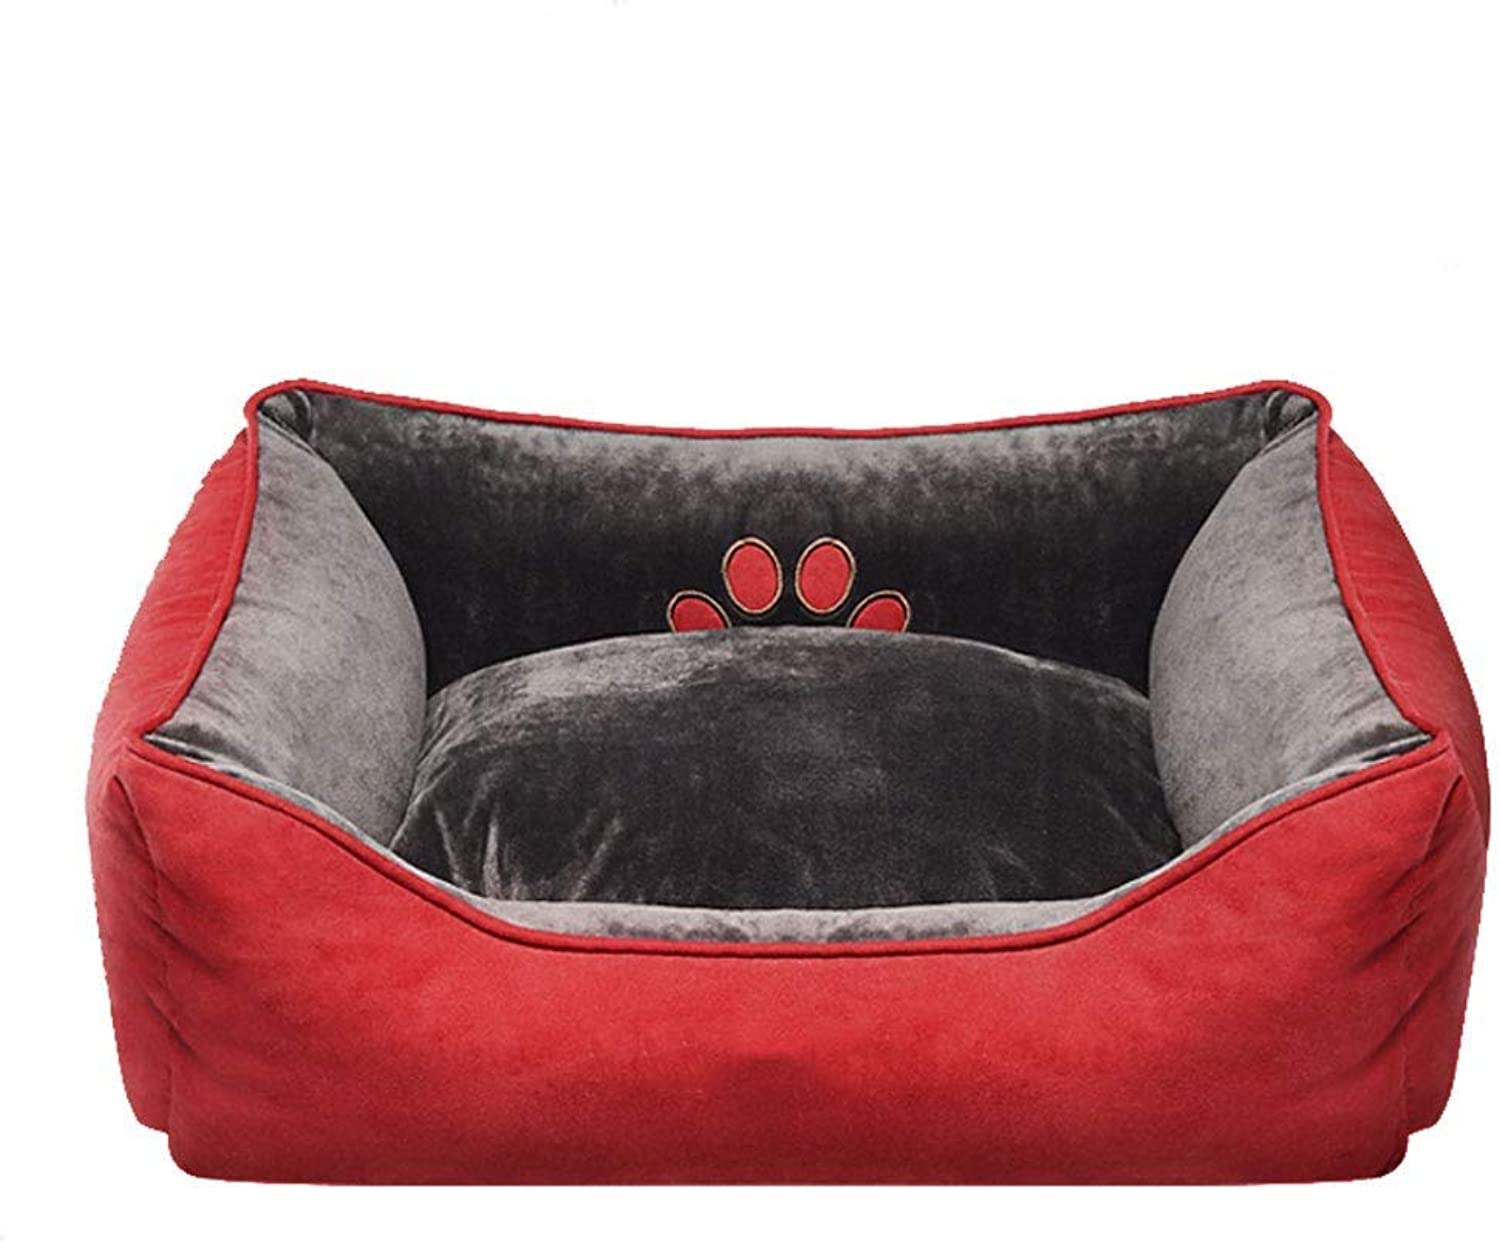 FASKT Pet Bed, Cuddly Pet Bed with Durable Fabrics for Small Medium Dog Cat Plush Rectangle Nest Puppy Sleeping Bag Cushion (Size   M 65  55  19cm)